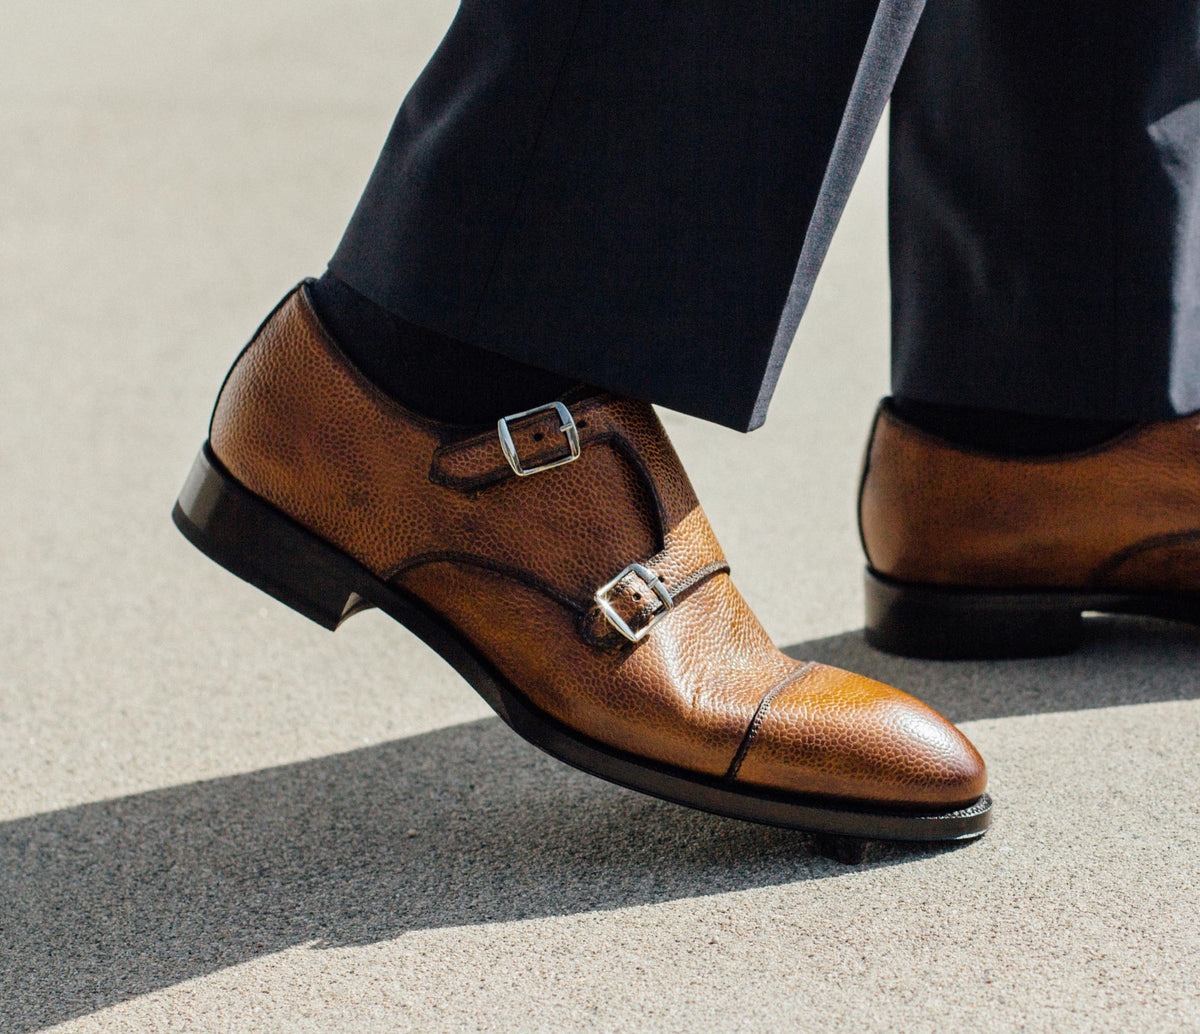 The Isernia Stone Monk Strap Shoes